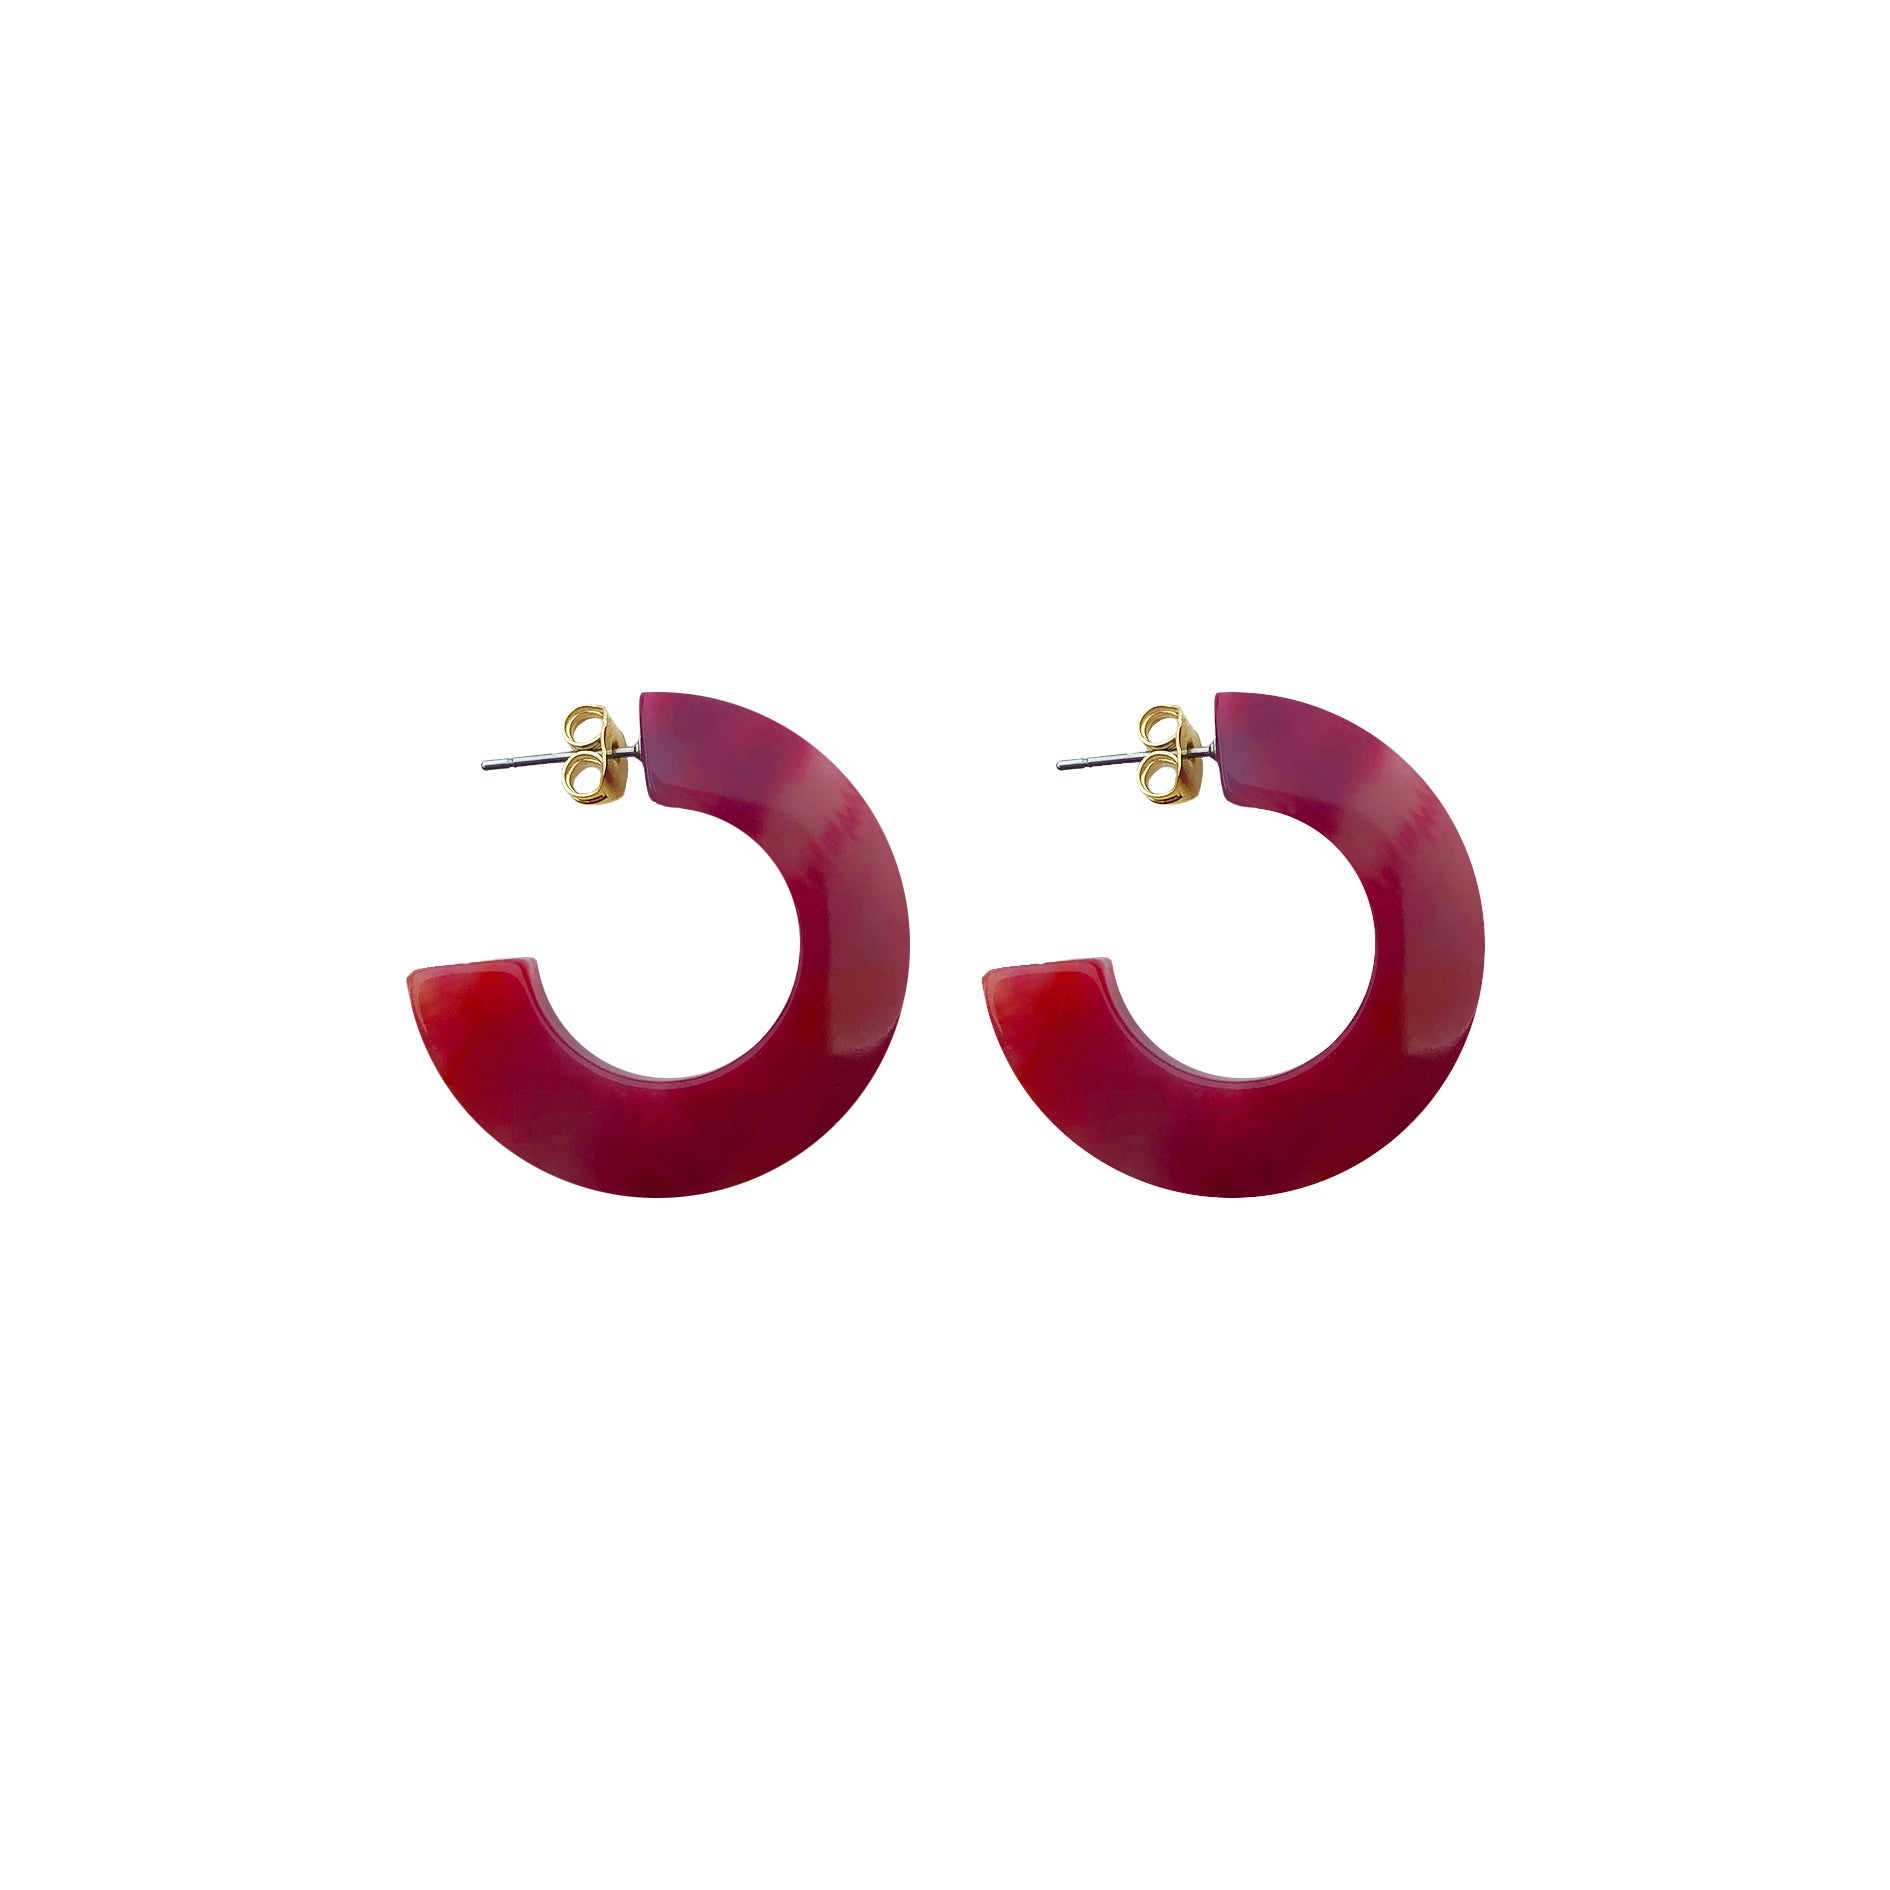 Hanna hoop small earring red - Souvenirs de Pomme